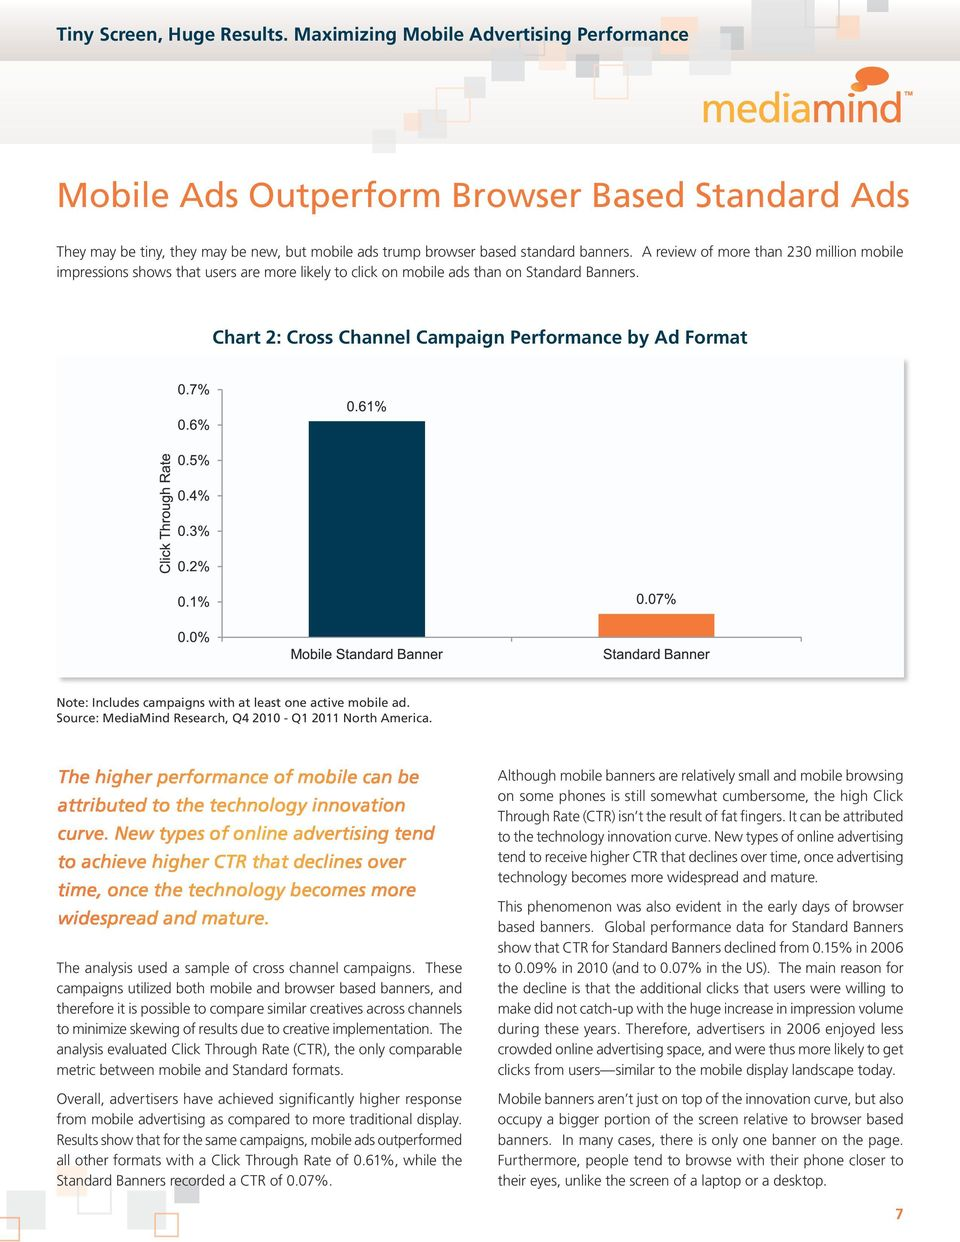 Chart 2: Cross Channel Campaign Performance by Ad Format Note: Includes campaigns with at least one active mobile ad. Source: MediaMind Research, Q4 2010 - Q1 2011 North America.